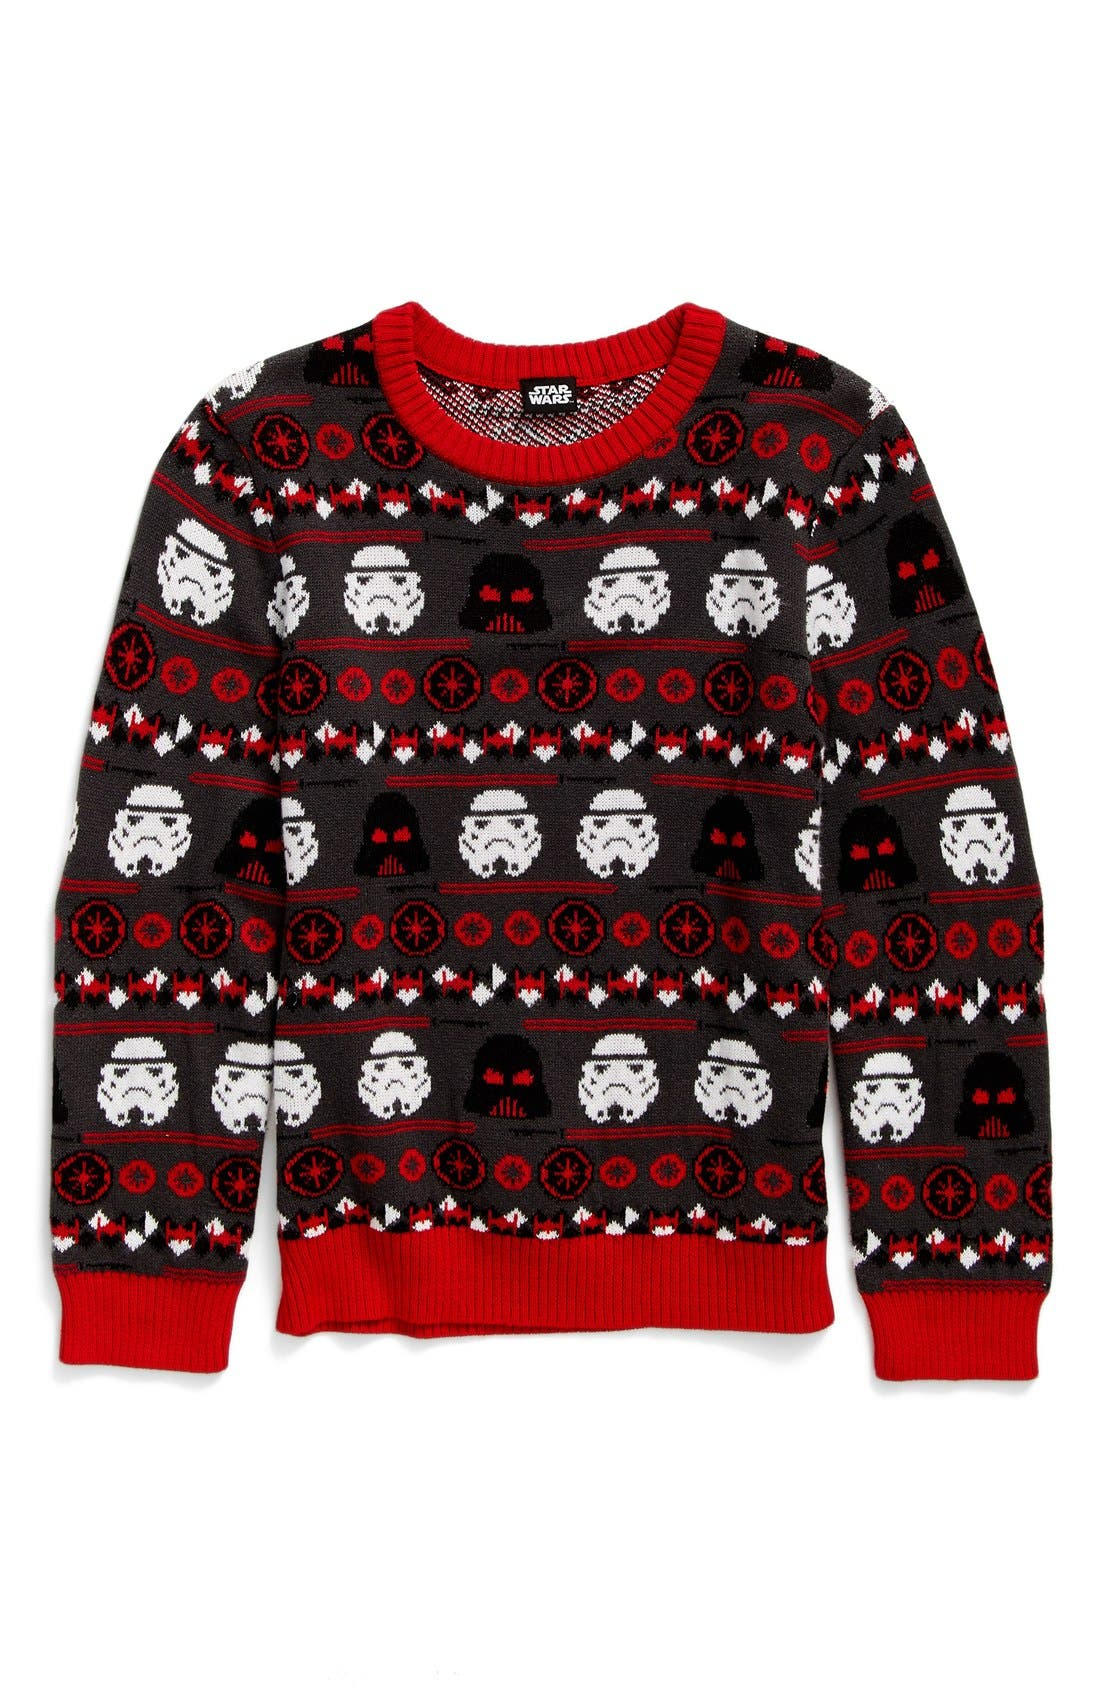 Alternate Image 1 Selected - Jem Holiday Wars Sweater (Big Boys)